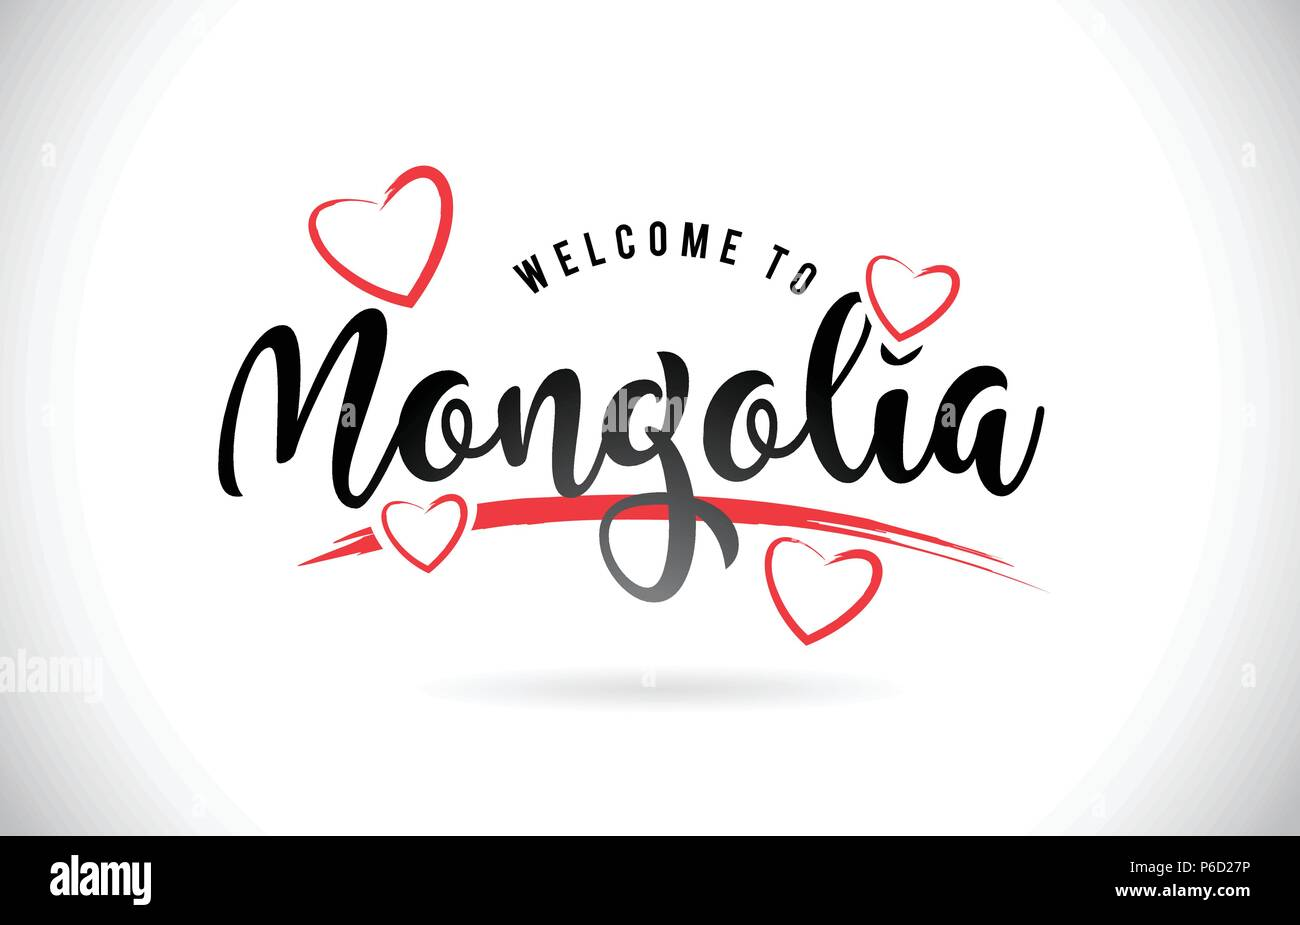 Mongolia Welcome To Word Text with Handwritten Font and Red Love Hearts Vector Image Illustration Eps. - Stock Vector